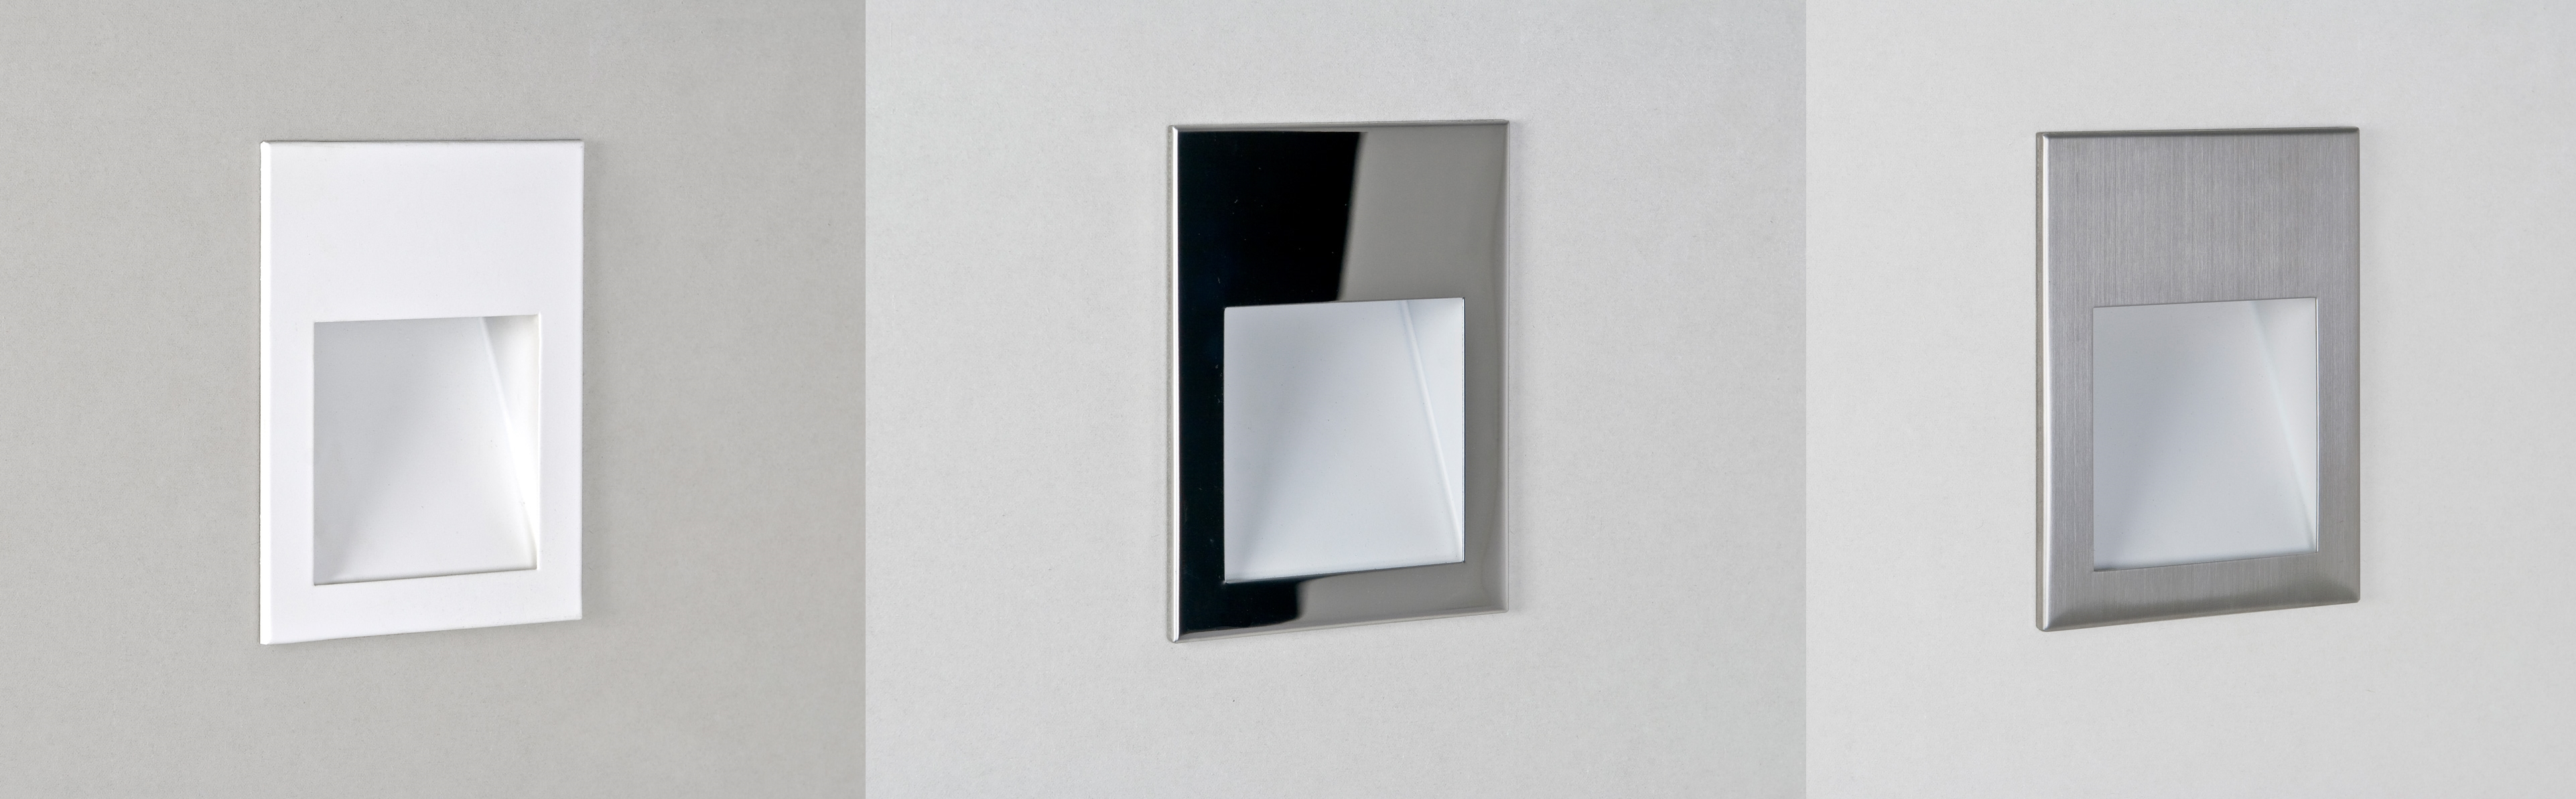 Astro Recessed Wall Lights : Astro Borgo 90 recessed 3W LED low level wall light chrome white stainless steel